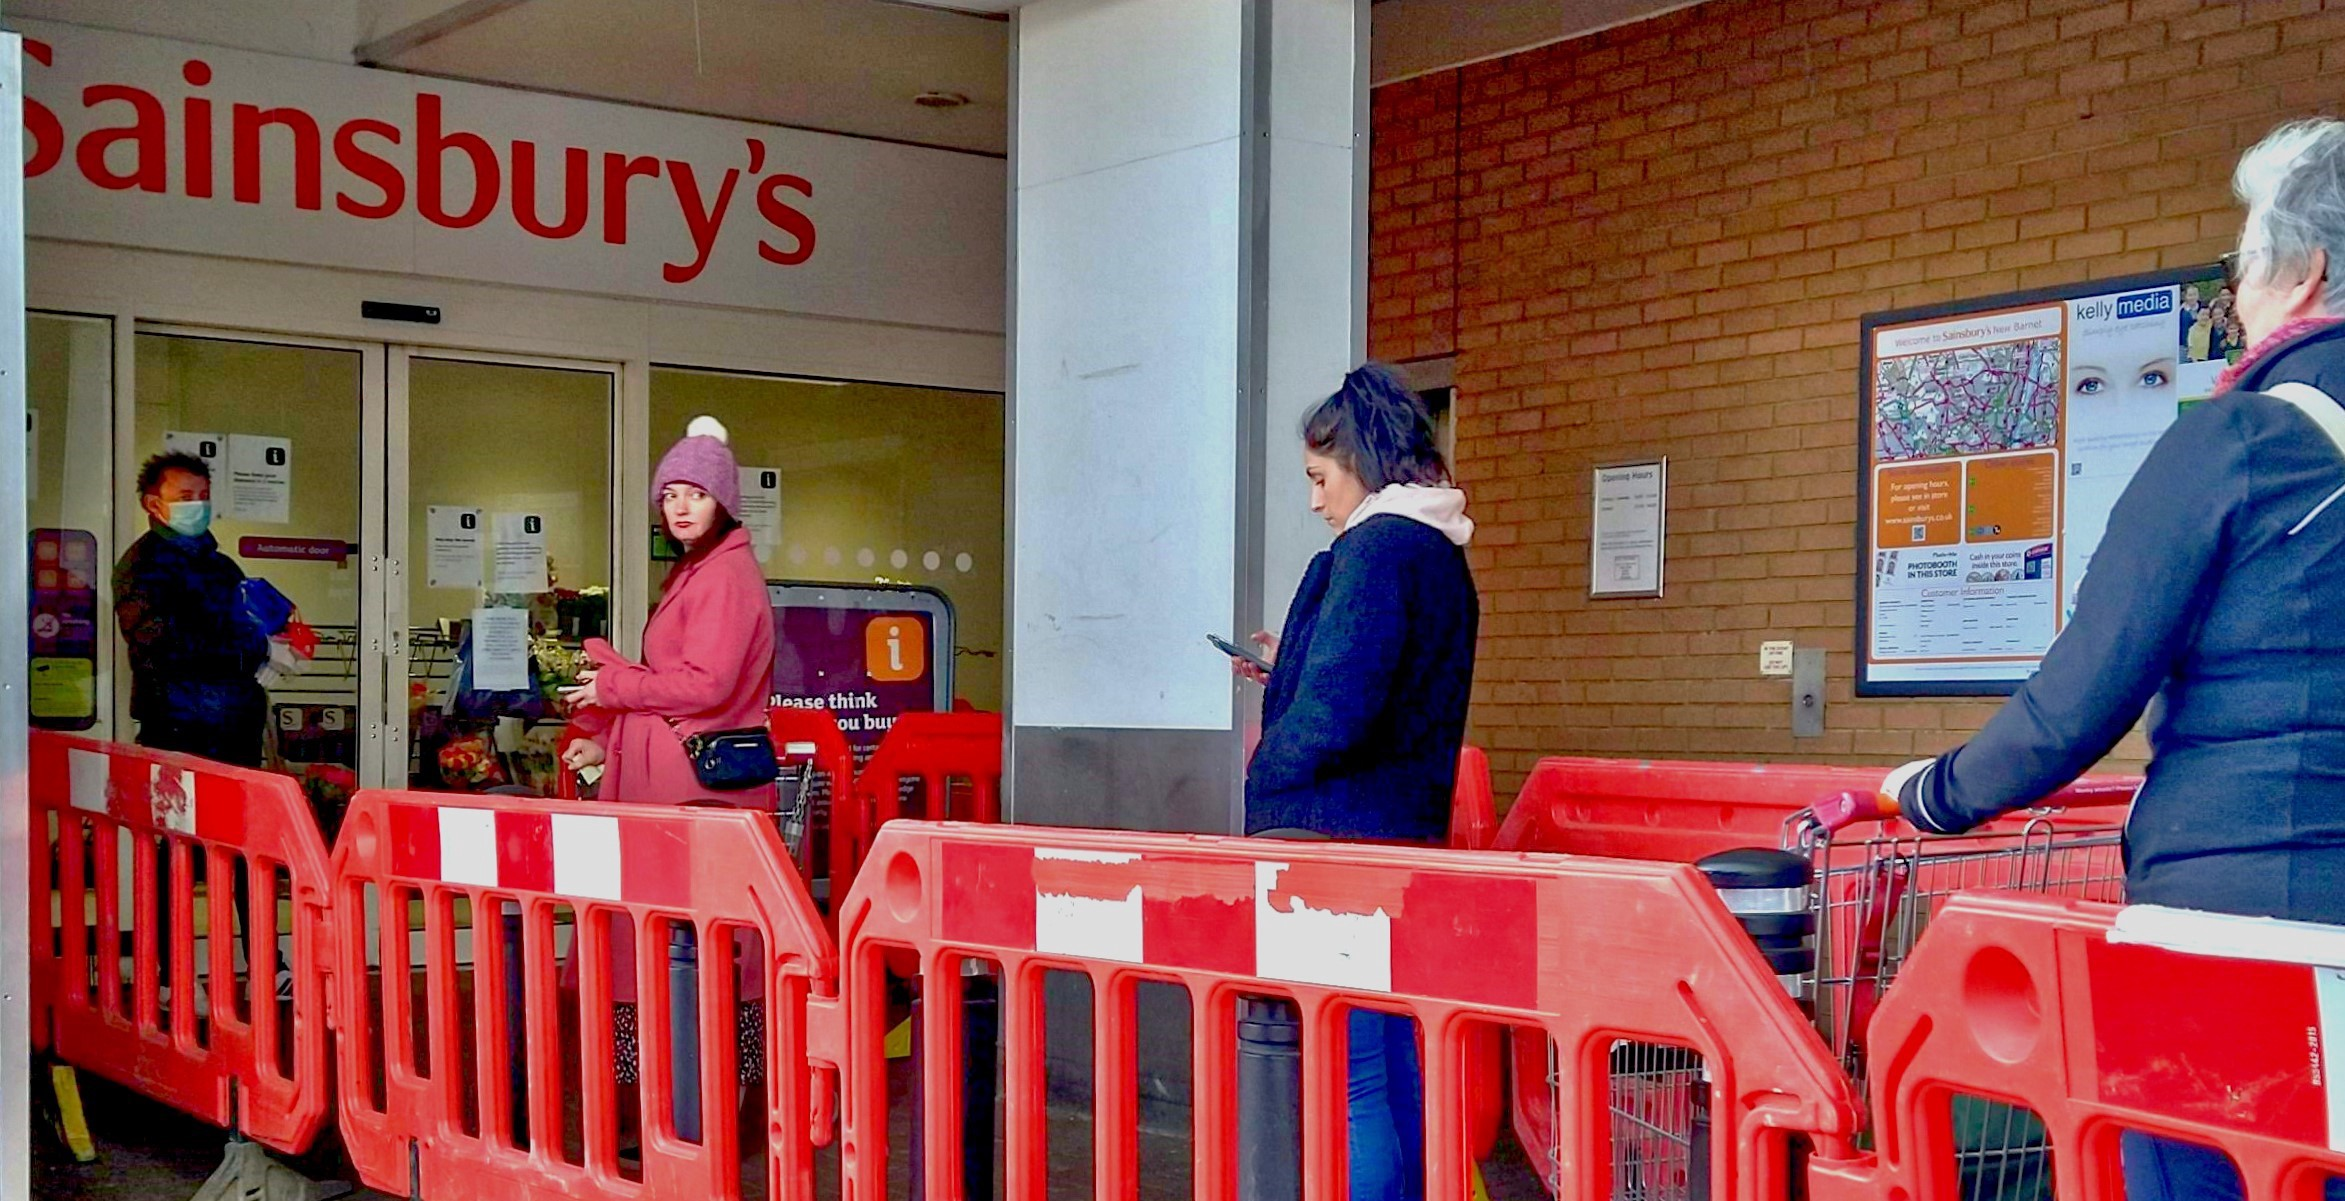 Socially-distant shoppers queueing for a Sainsbury's.